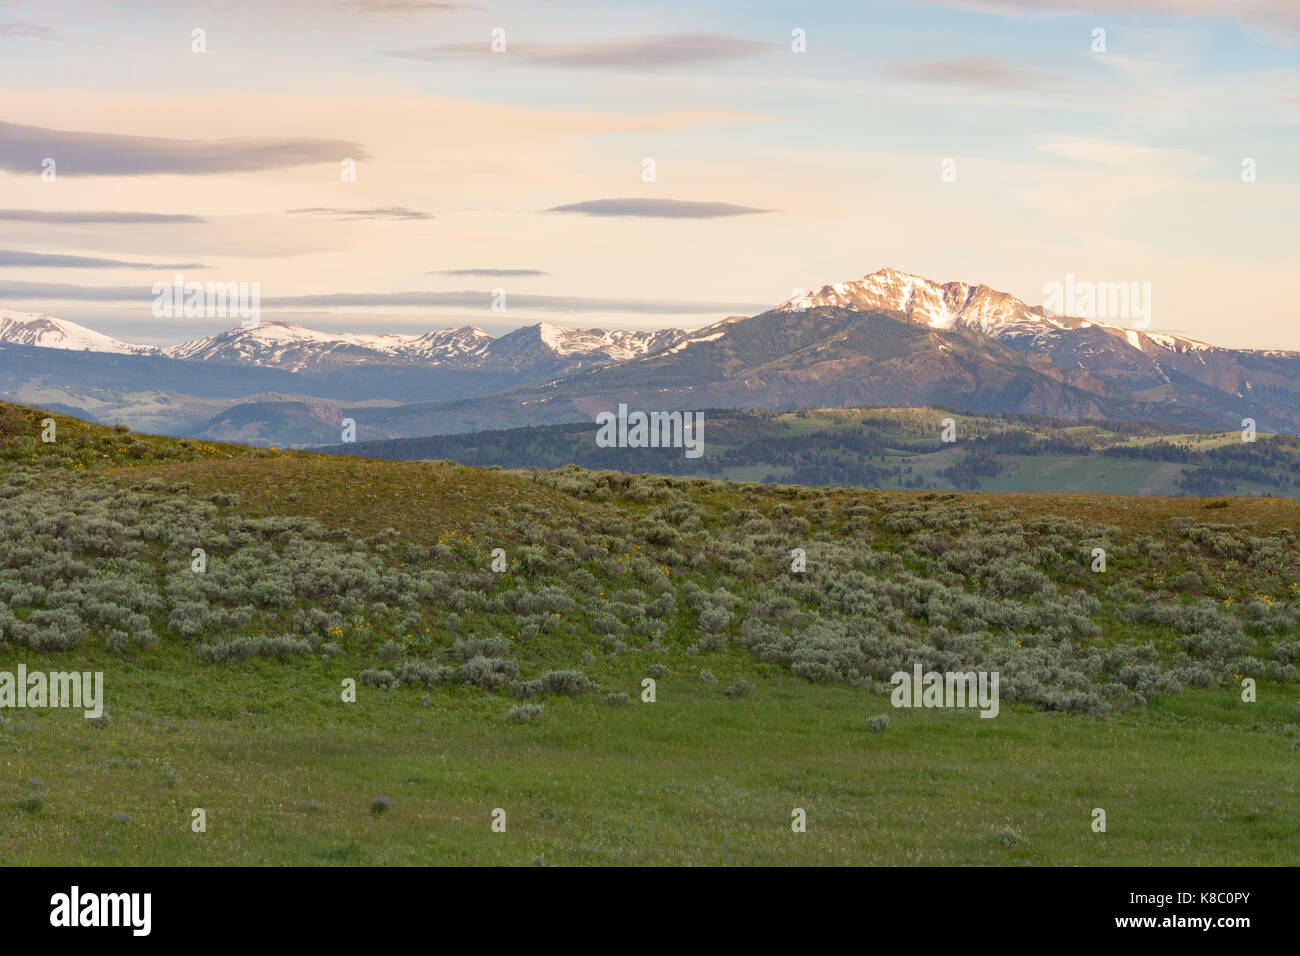 Blacktail Plateau with a view of snow capped mountains in the distance and a grassy green meadow with sagebrush - Stock Image